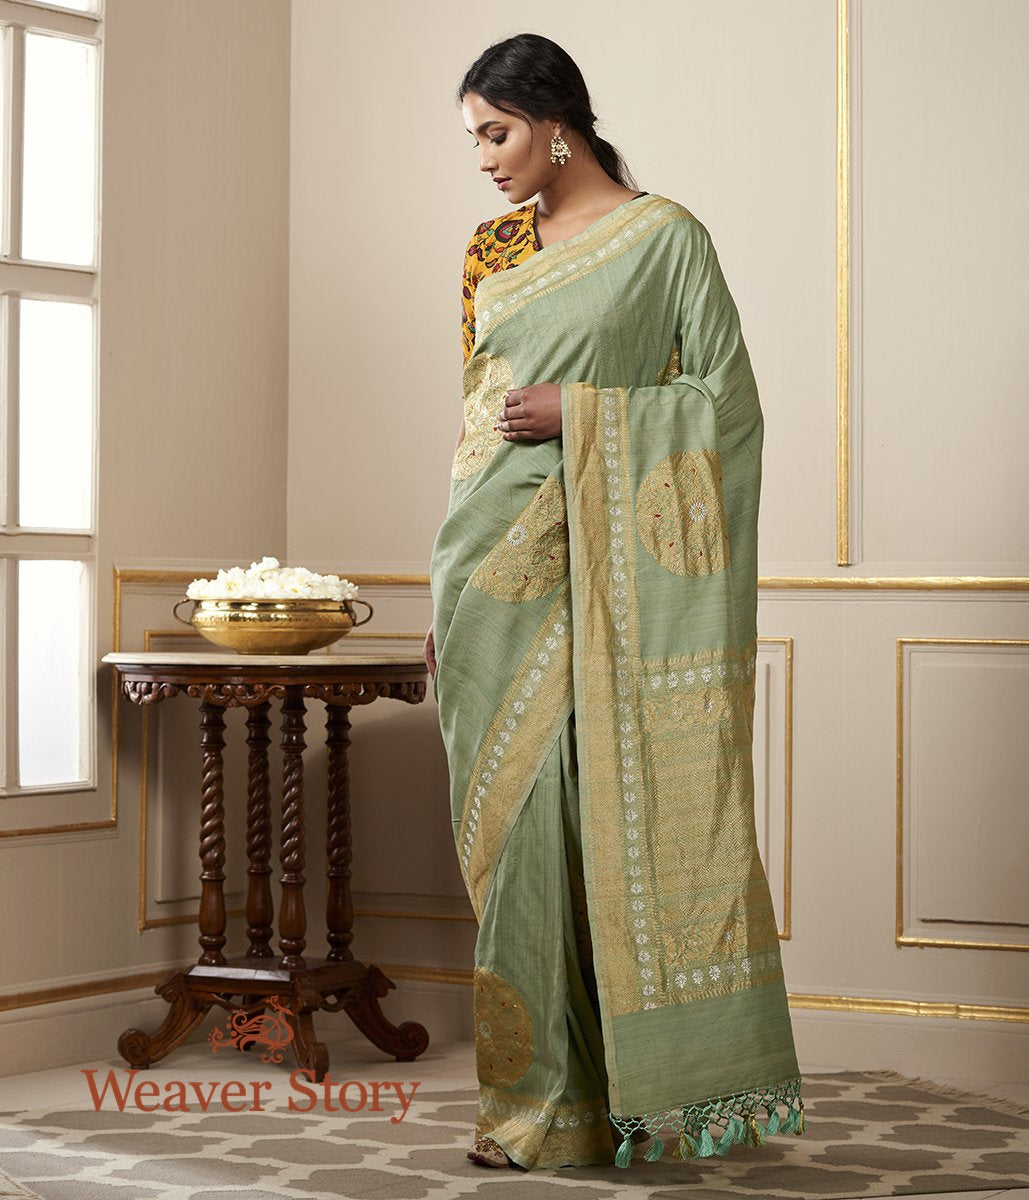 Handwoven Moss Green Tusser Georgette Saree with Kadhwa Boota and Meenakari